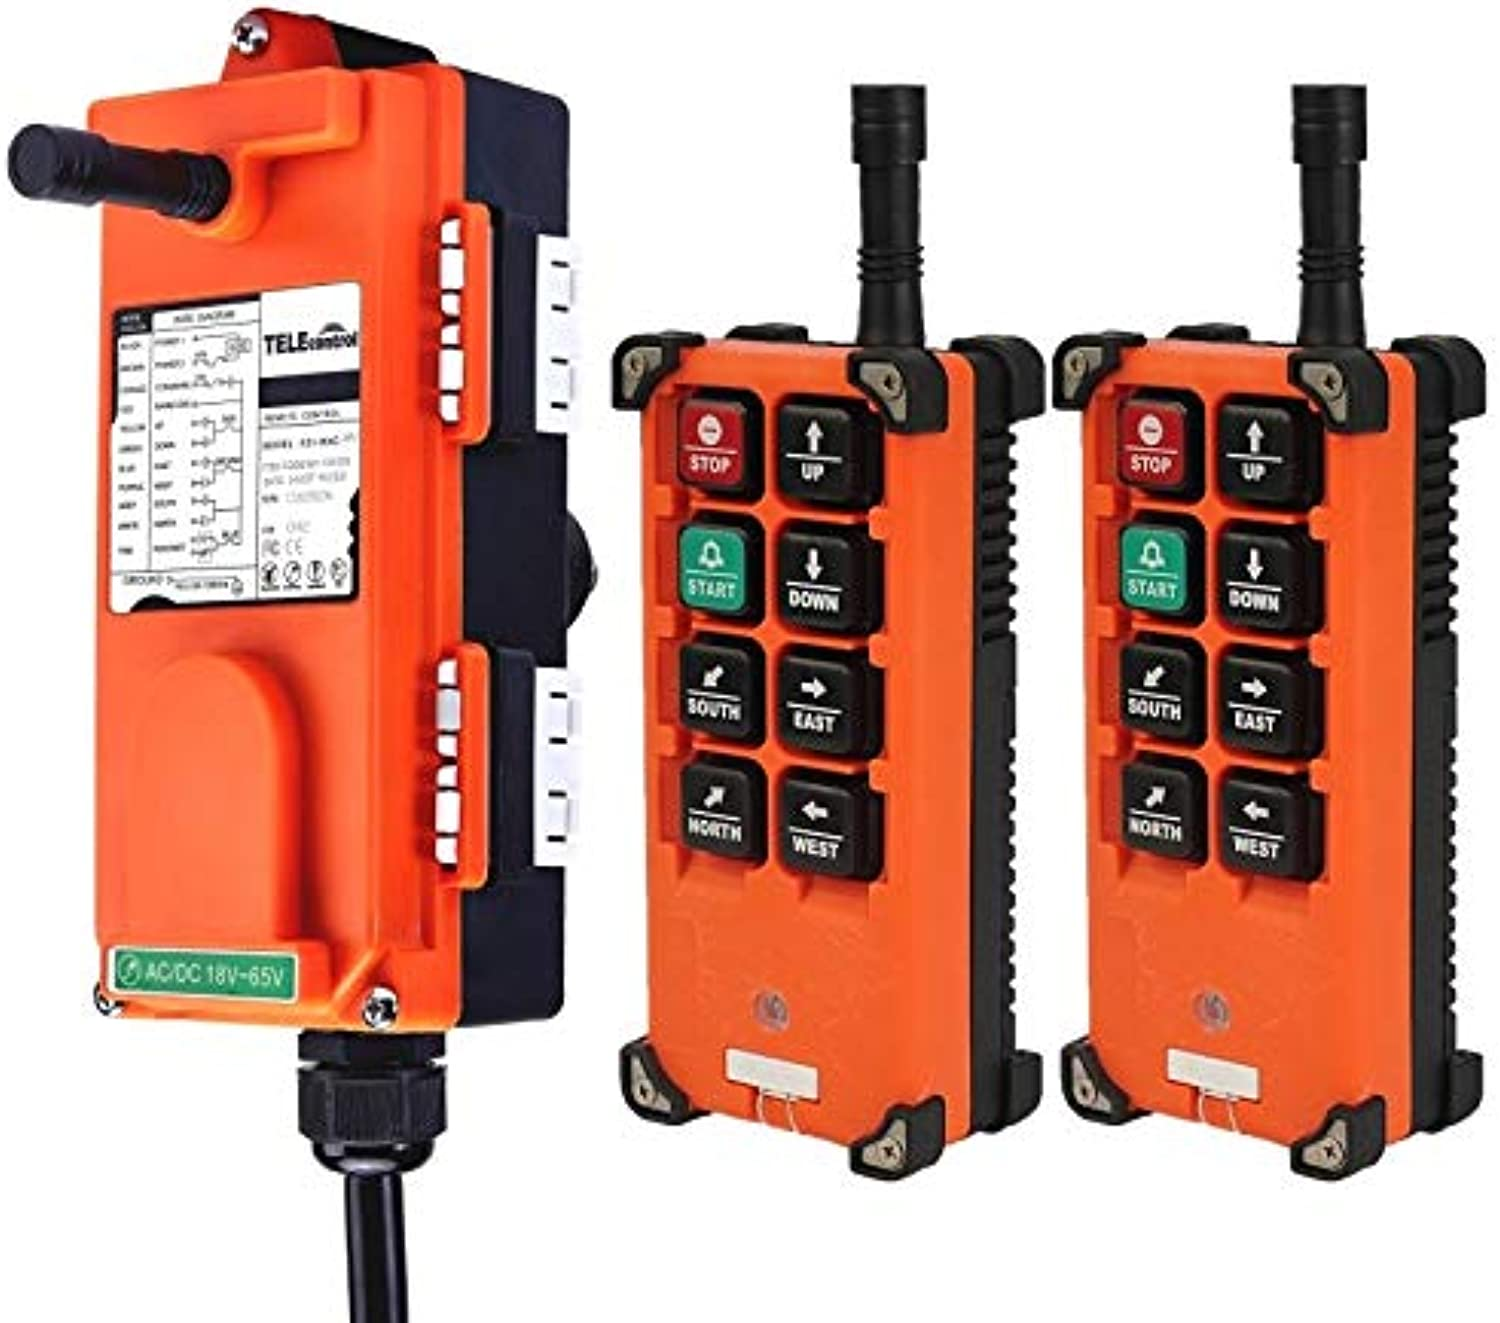 Ochoos F21-E1B Industrial Wireless Universal Radio Remote Control for Overhead Crane AC DC 2transmitter and 1receiver(color  18to65V UHF425to446)